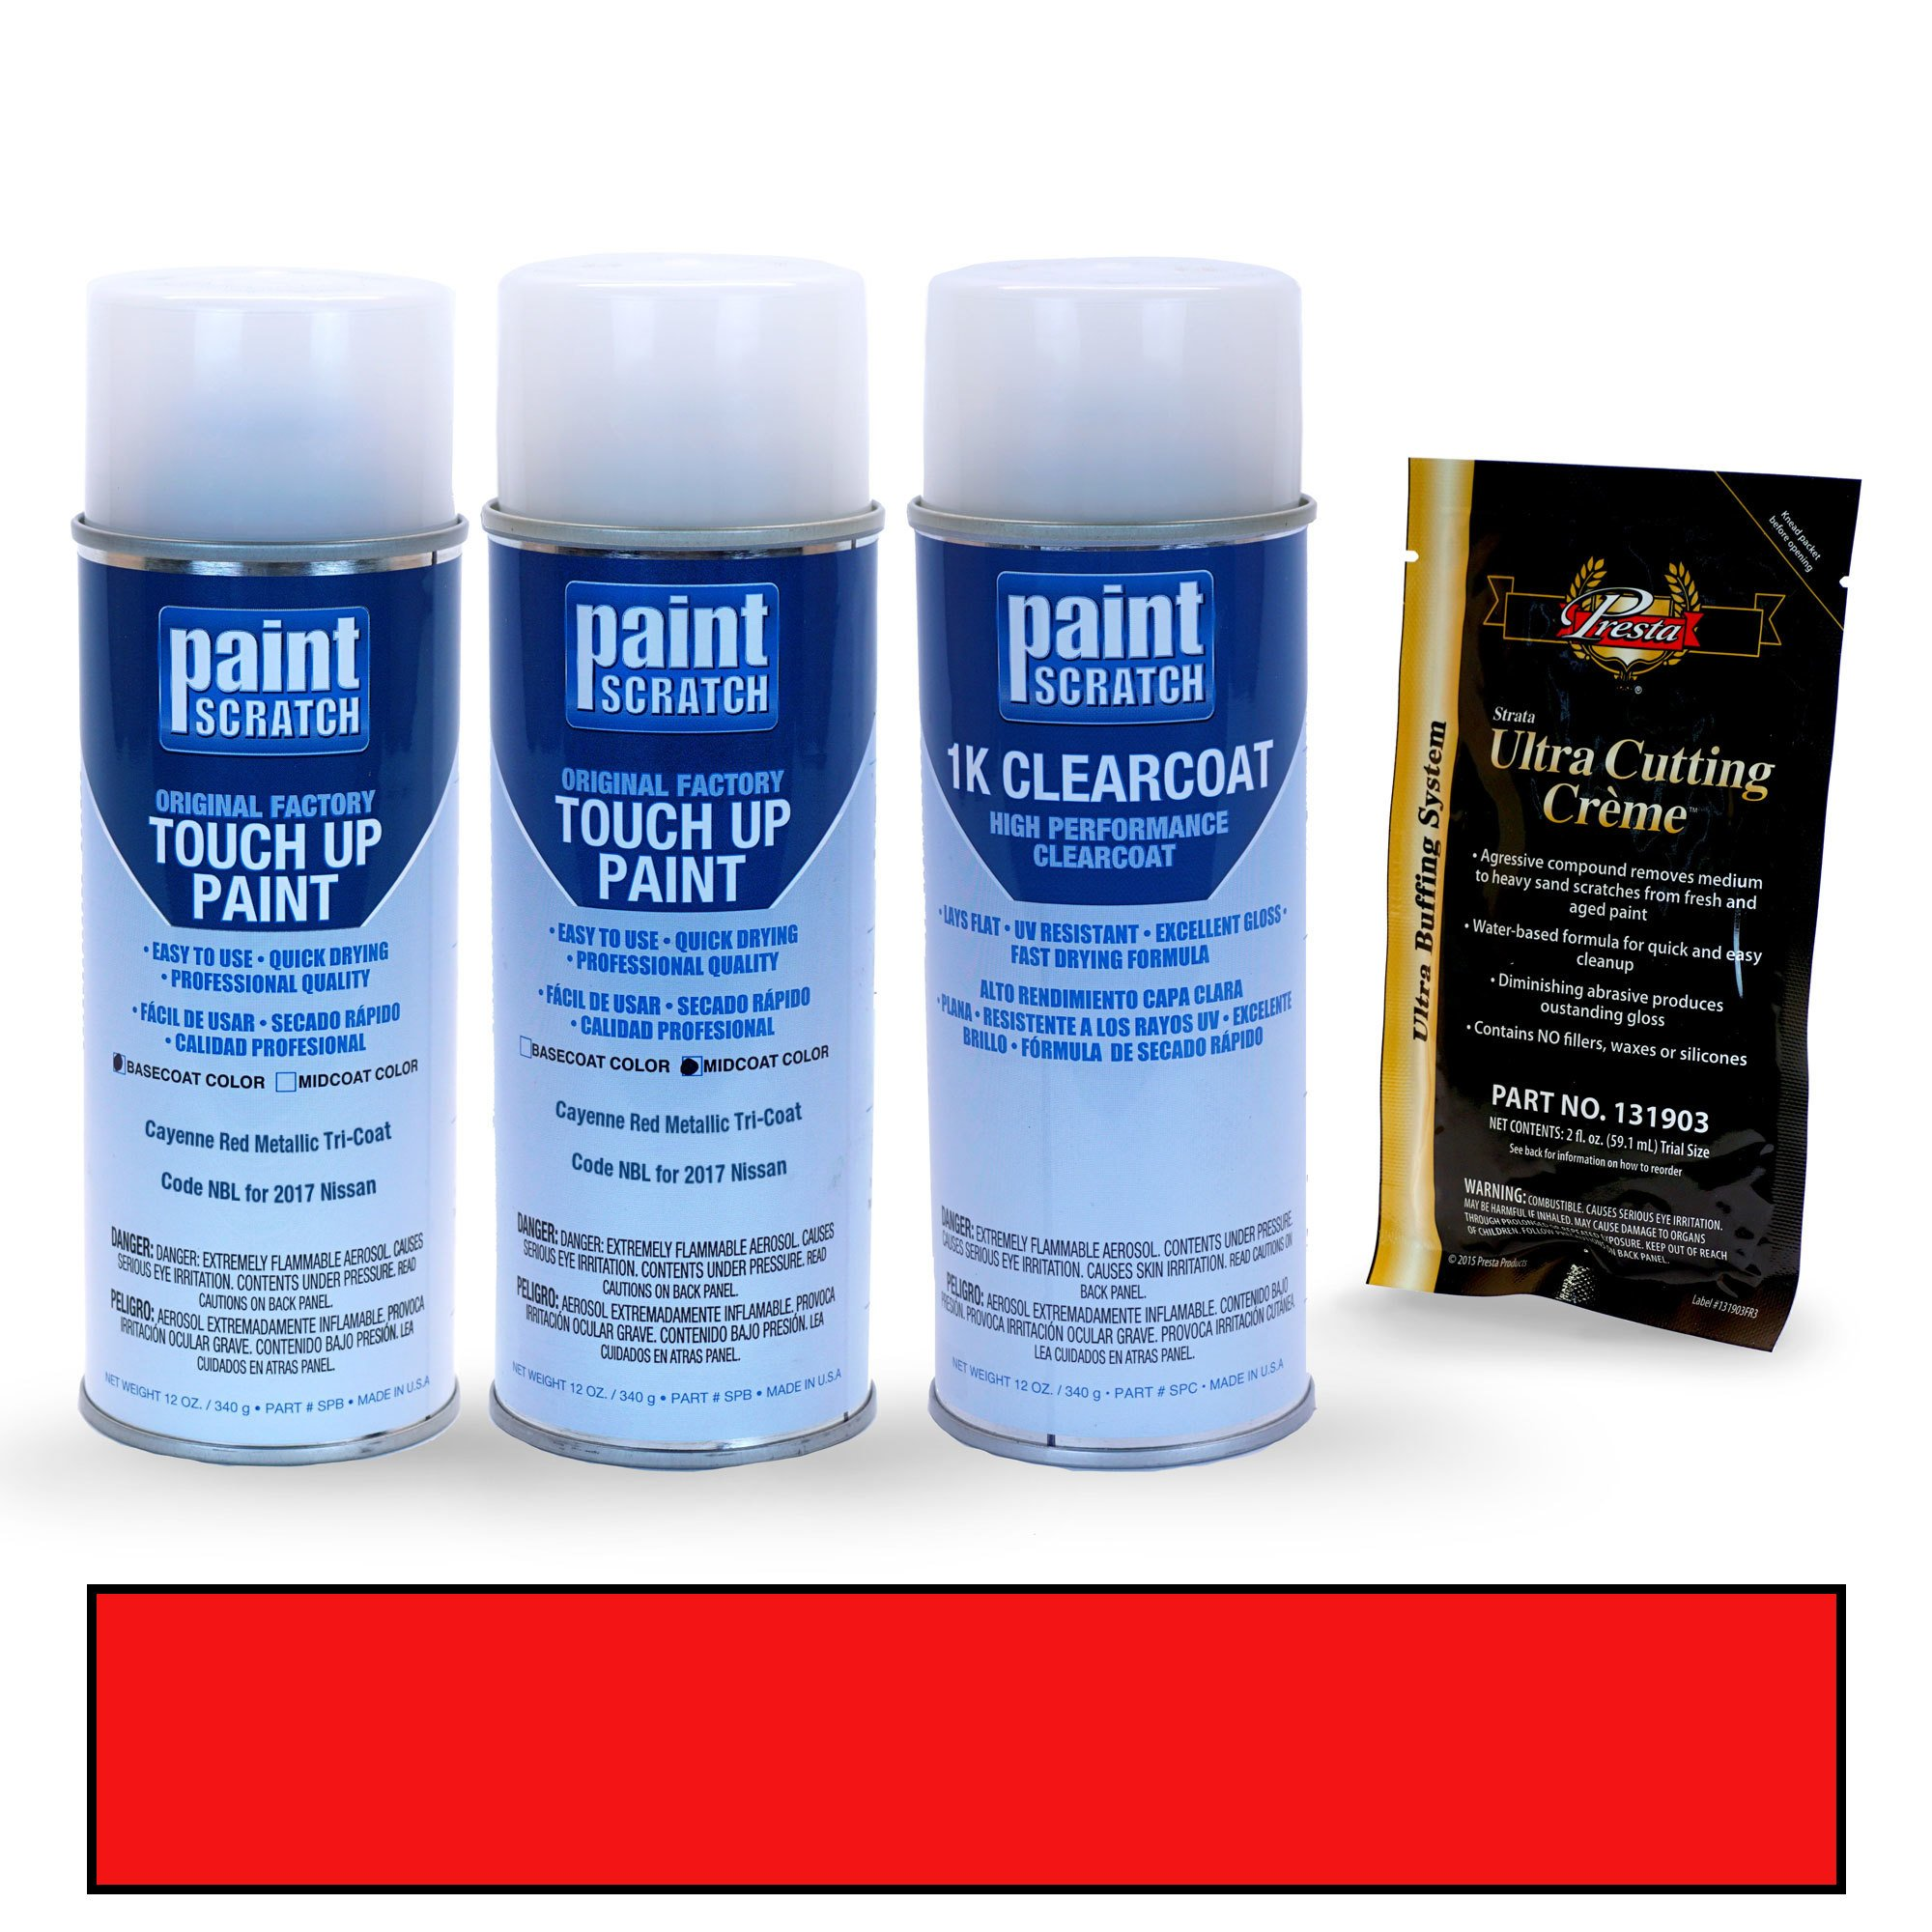 PAINTSCRATCH Cayenne Red Metallic Tri-Coat NBL for 2017 Nissan Altima - Touch Up Paint Spray Can Kit - Original Factory OEM Automotive Paint - Color Match Guaranteed